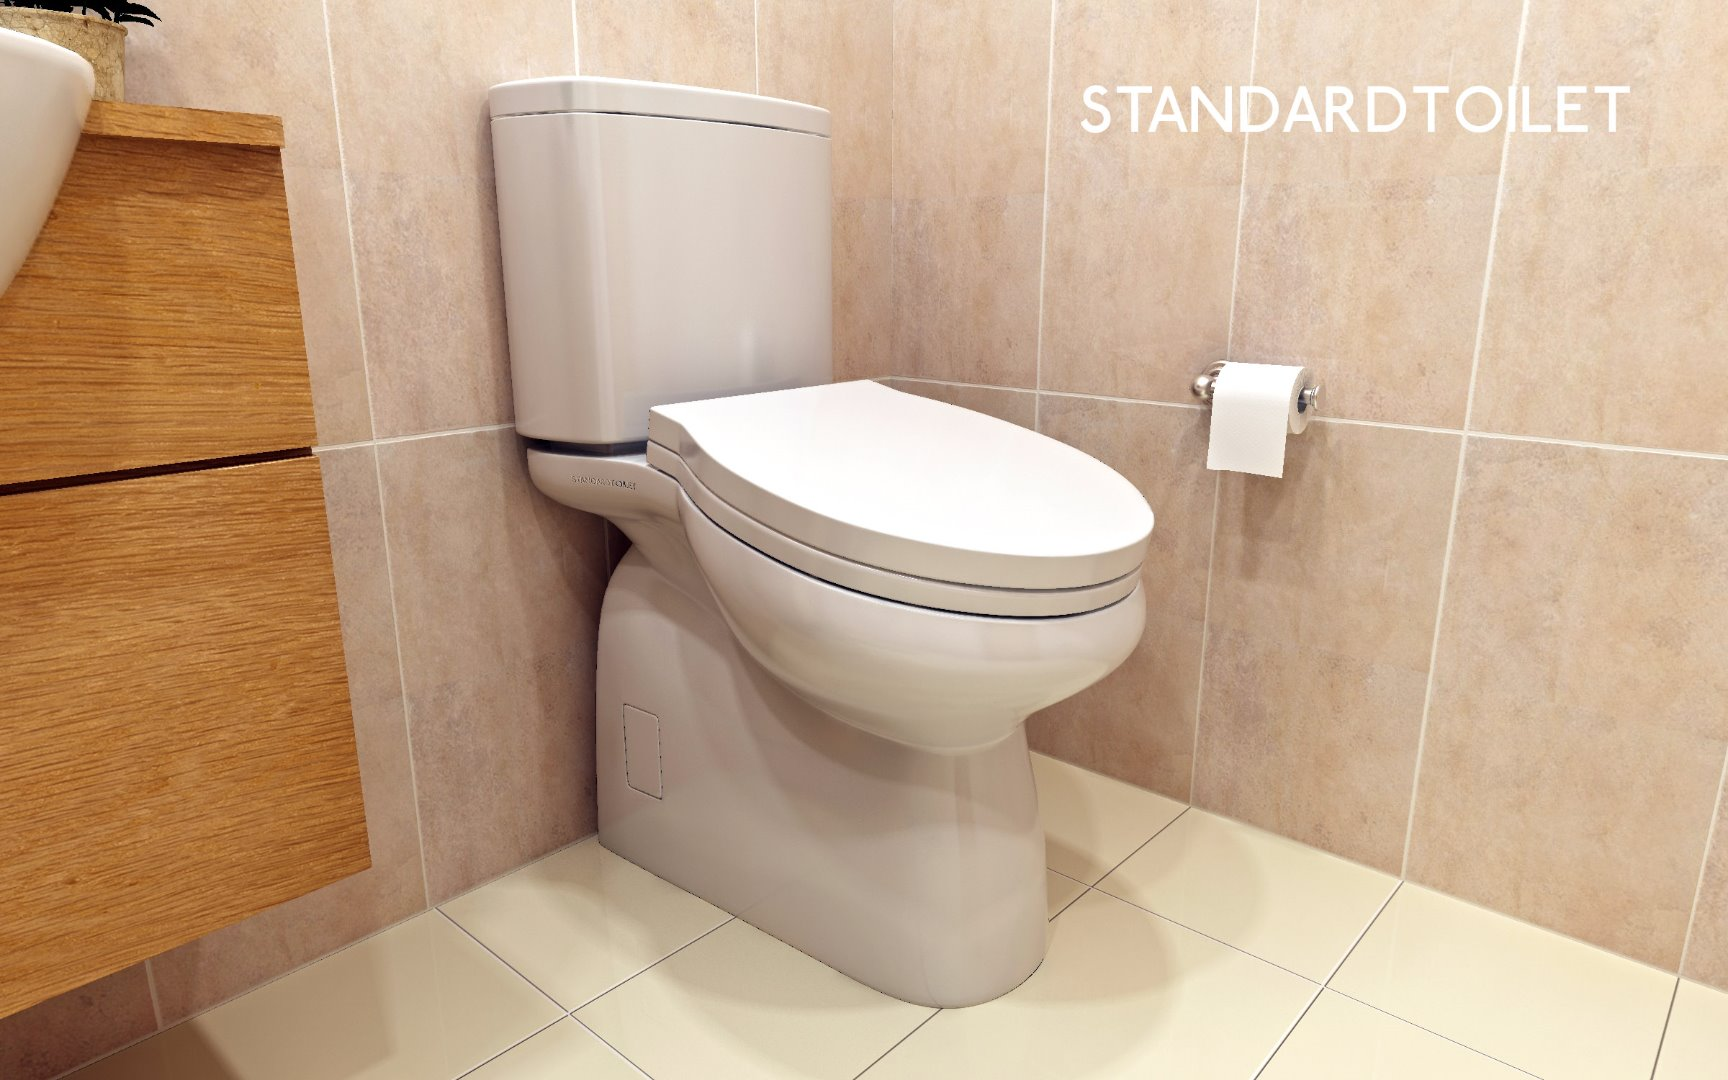 New Toilet Design Could Stop Long Bathroom Breaks At Work Cbs 42